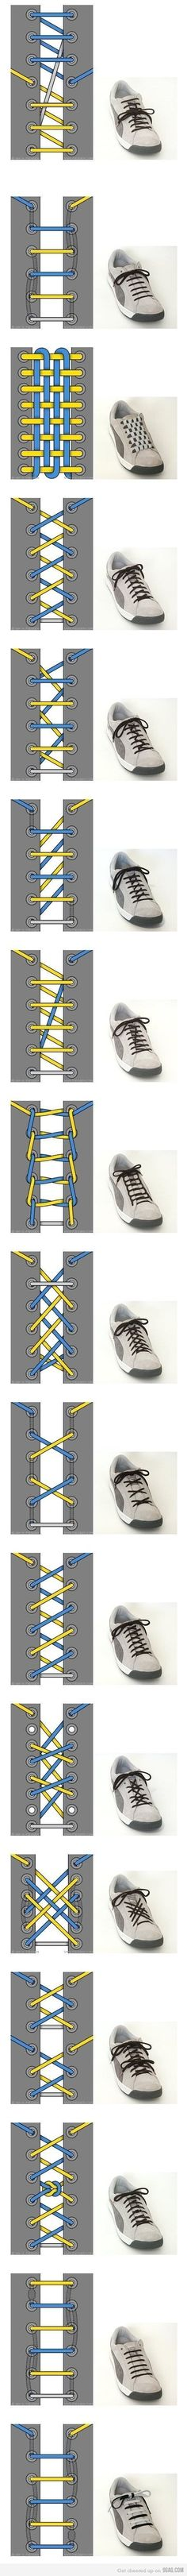 Who knew there were so many different ways to tie a shoe